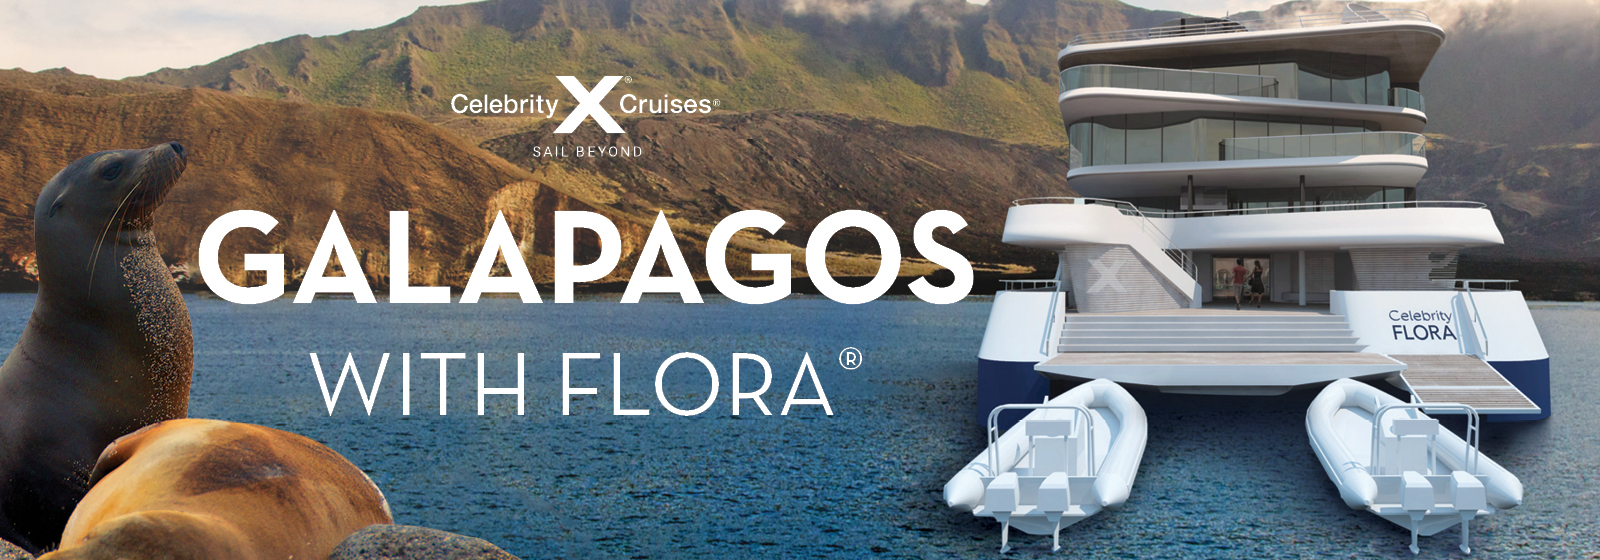 Celebrity - Galapagos with Flora